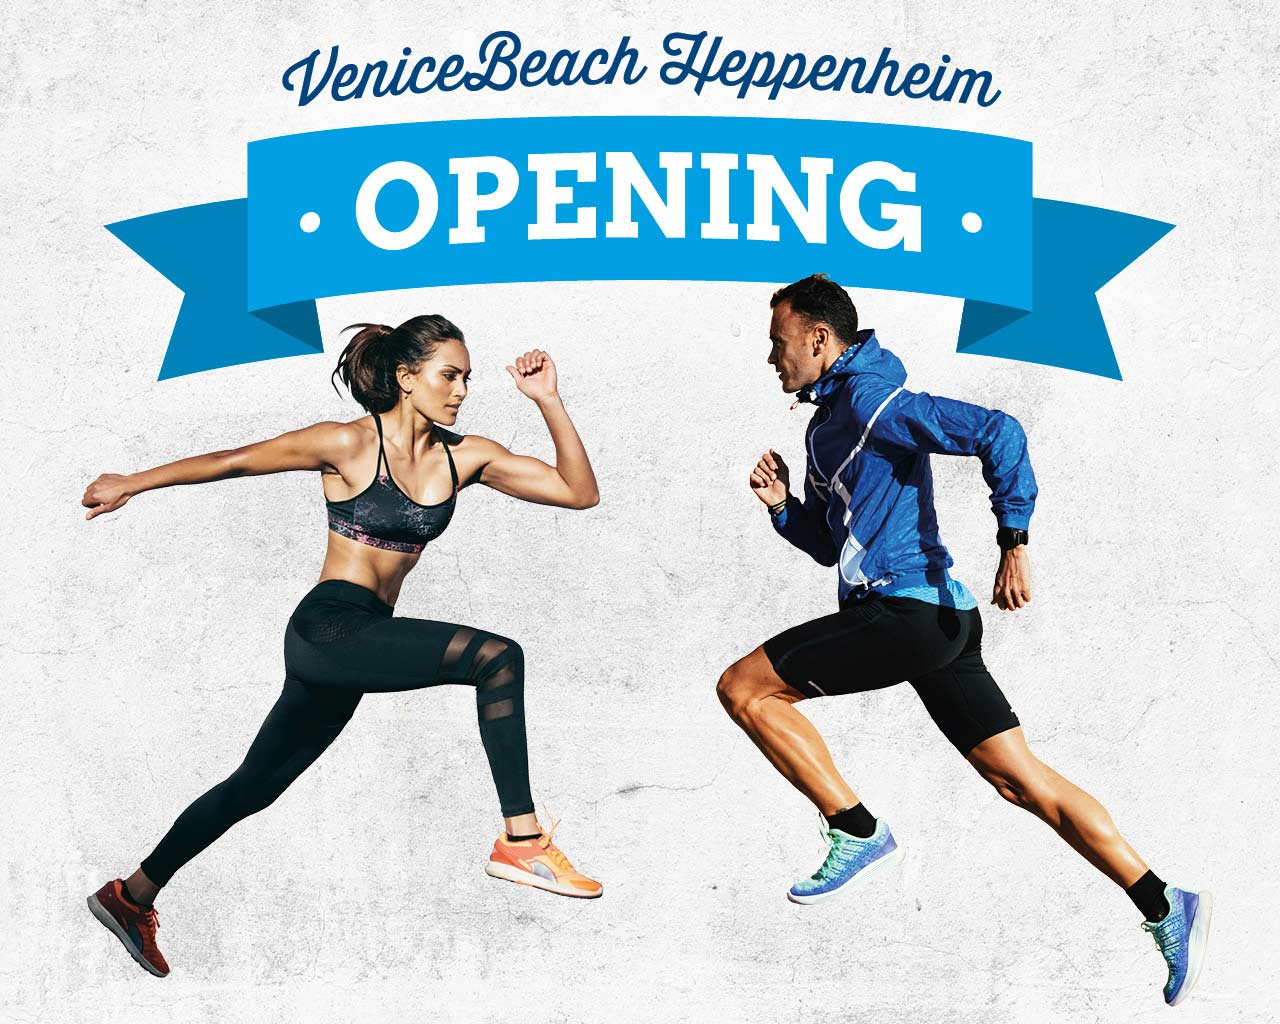 Opening: Club Heppenheim Thumbnail